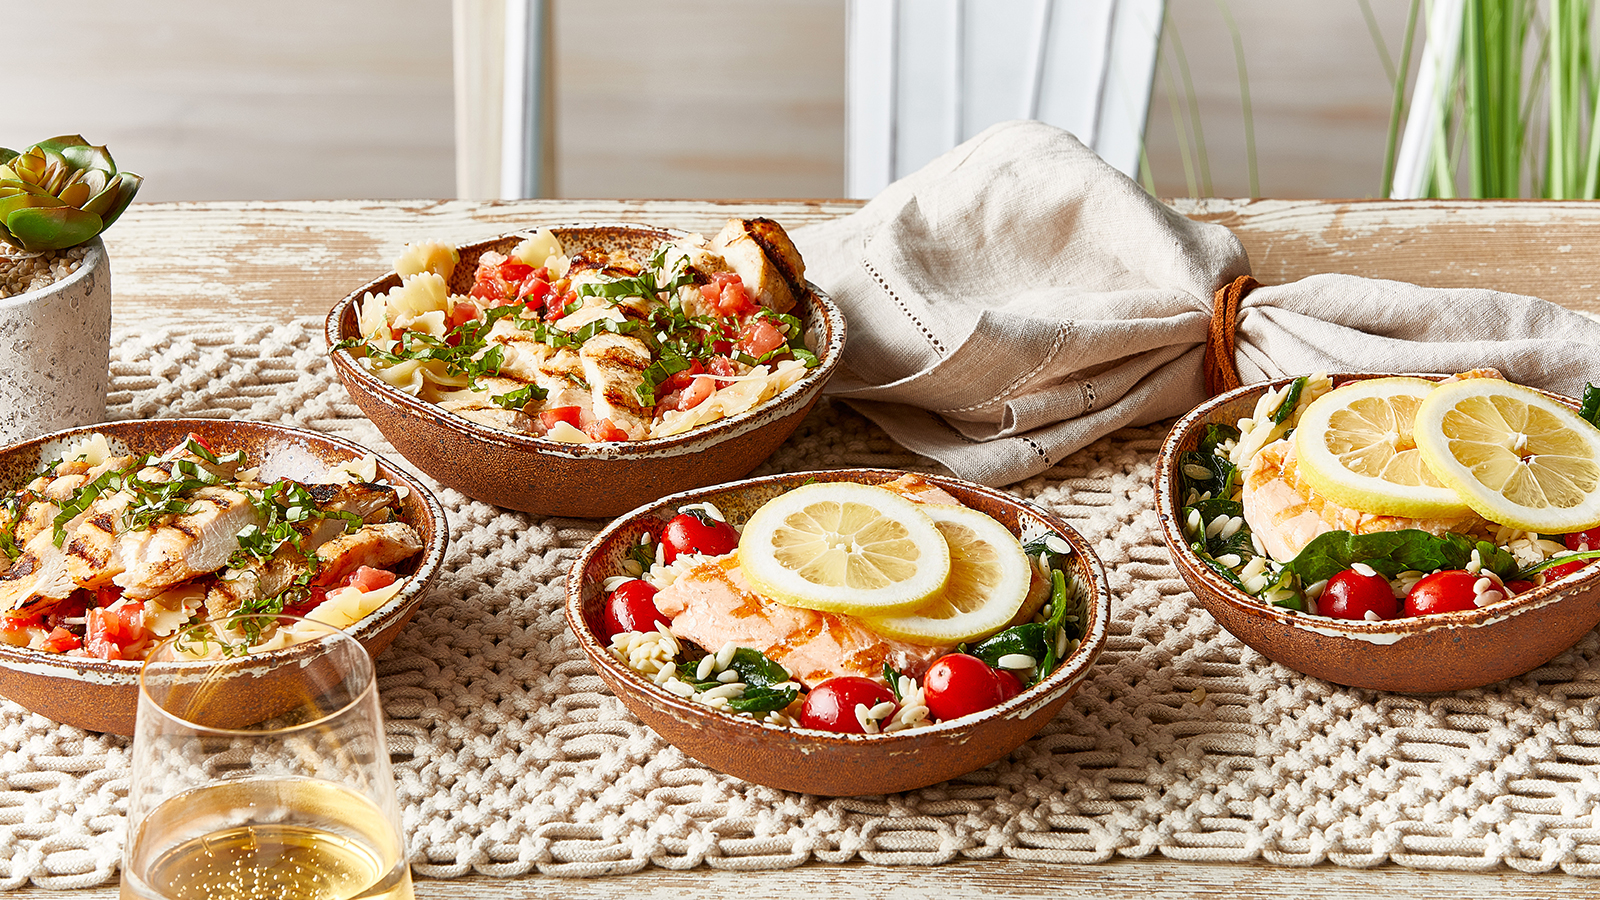 Grilled Salmon with Lemon Orzo Summer Bowl & Grilled Chicken Brushetta Summer Bowl